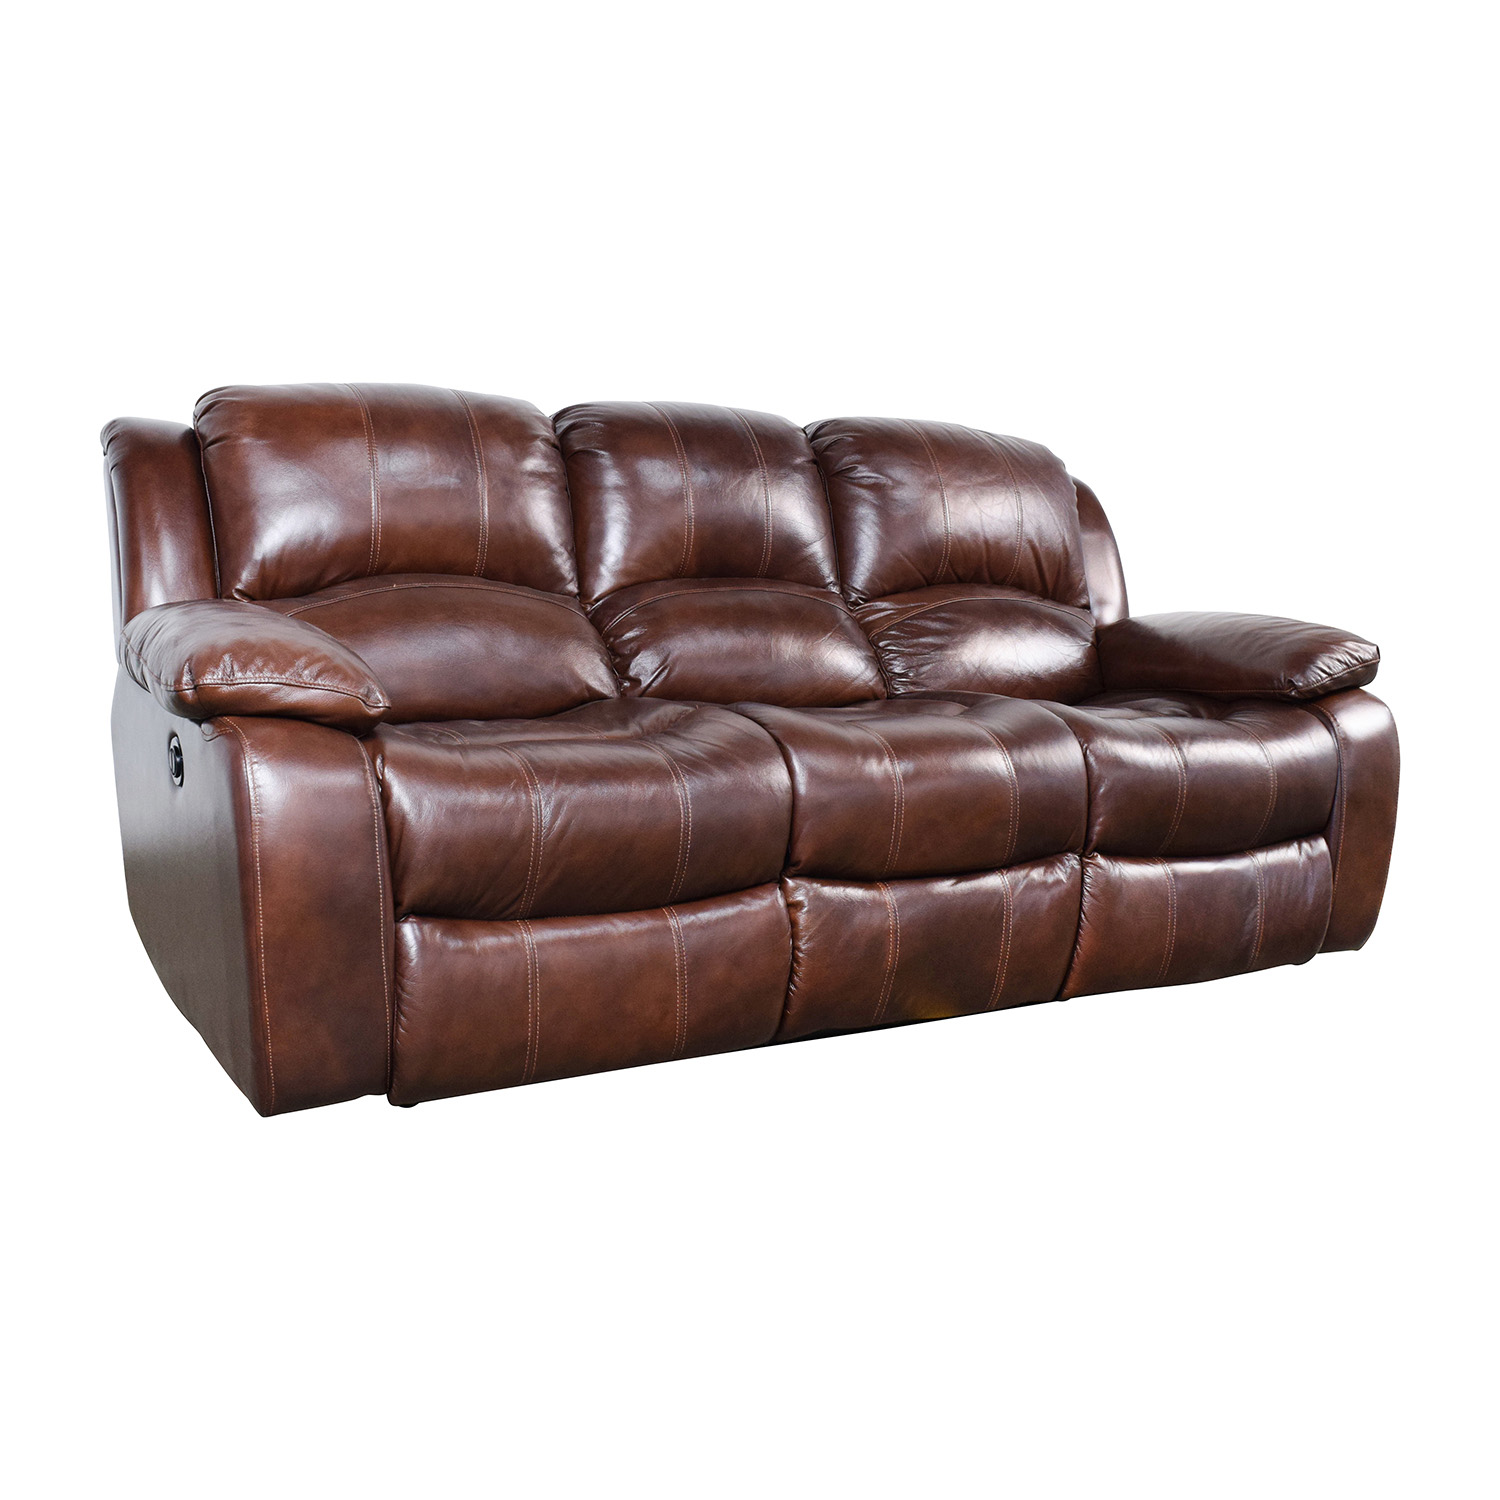 51% OFF   Raymour U0026 Flanigan Raymour U0026 Flanigan Bryant II Leather Power  Reclining Sofa / Sofas